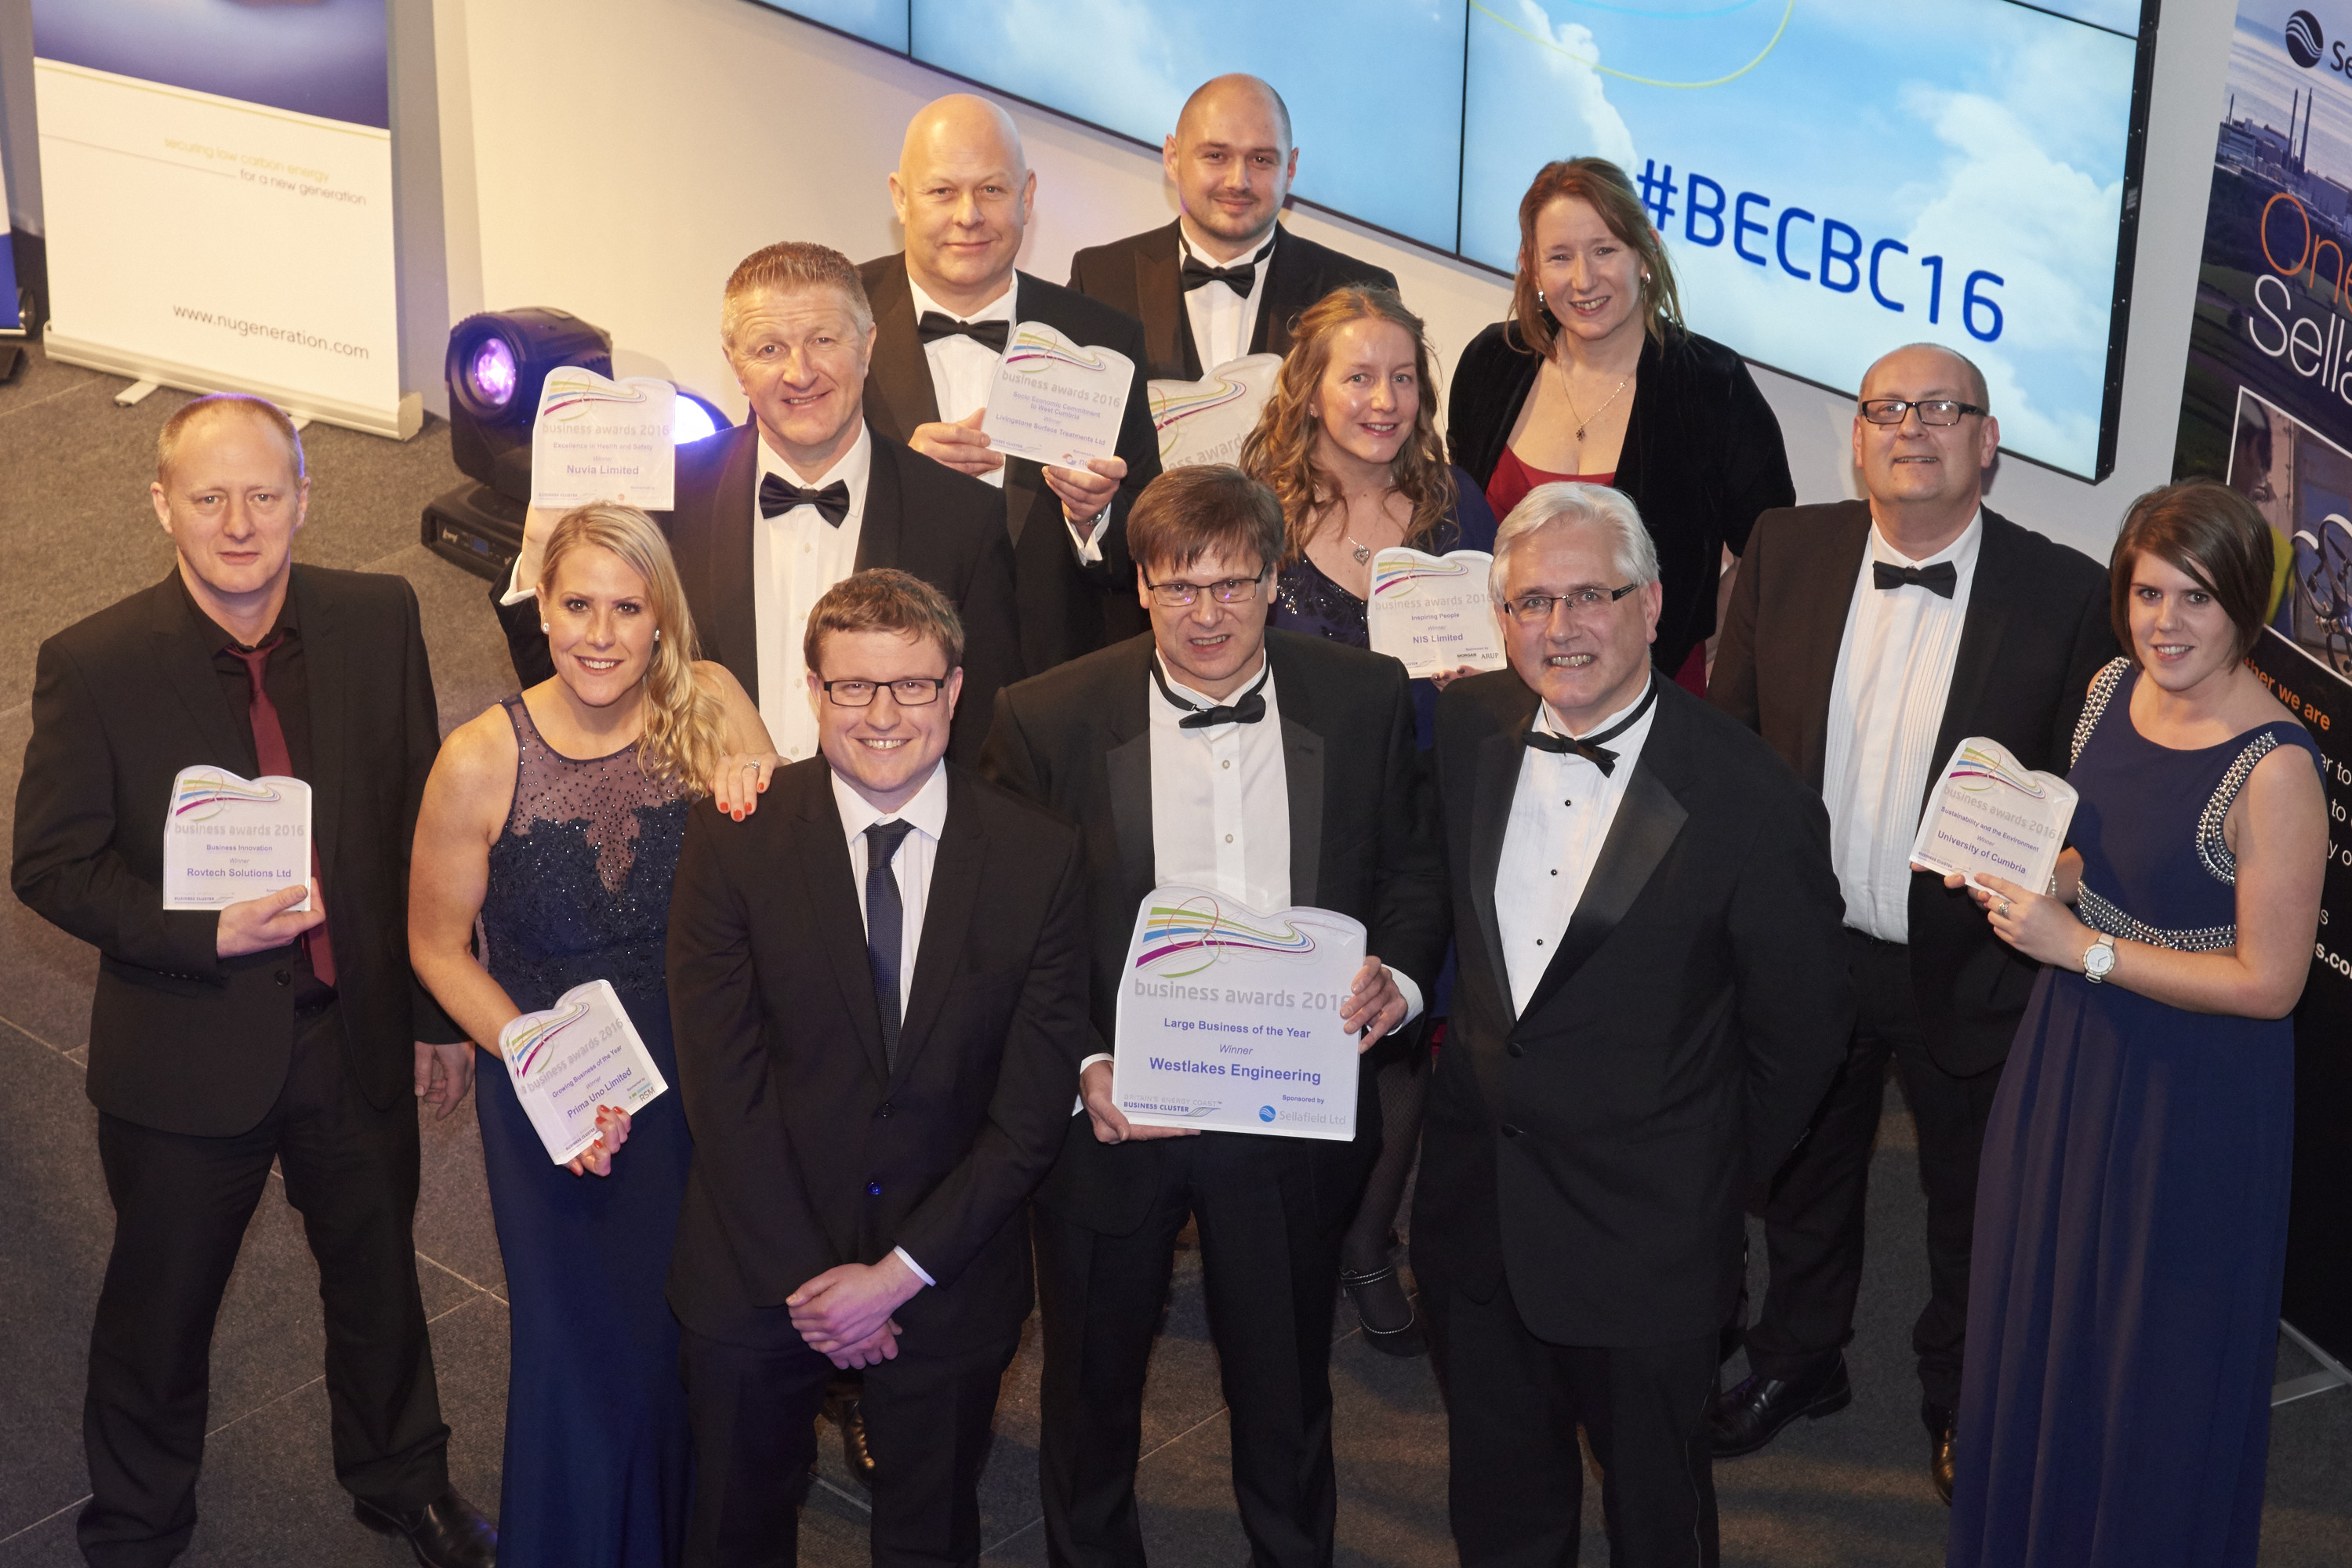 Britain's Energy Coast Business Cluster Awards